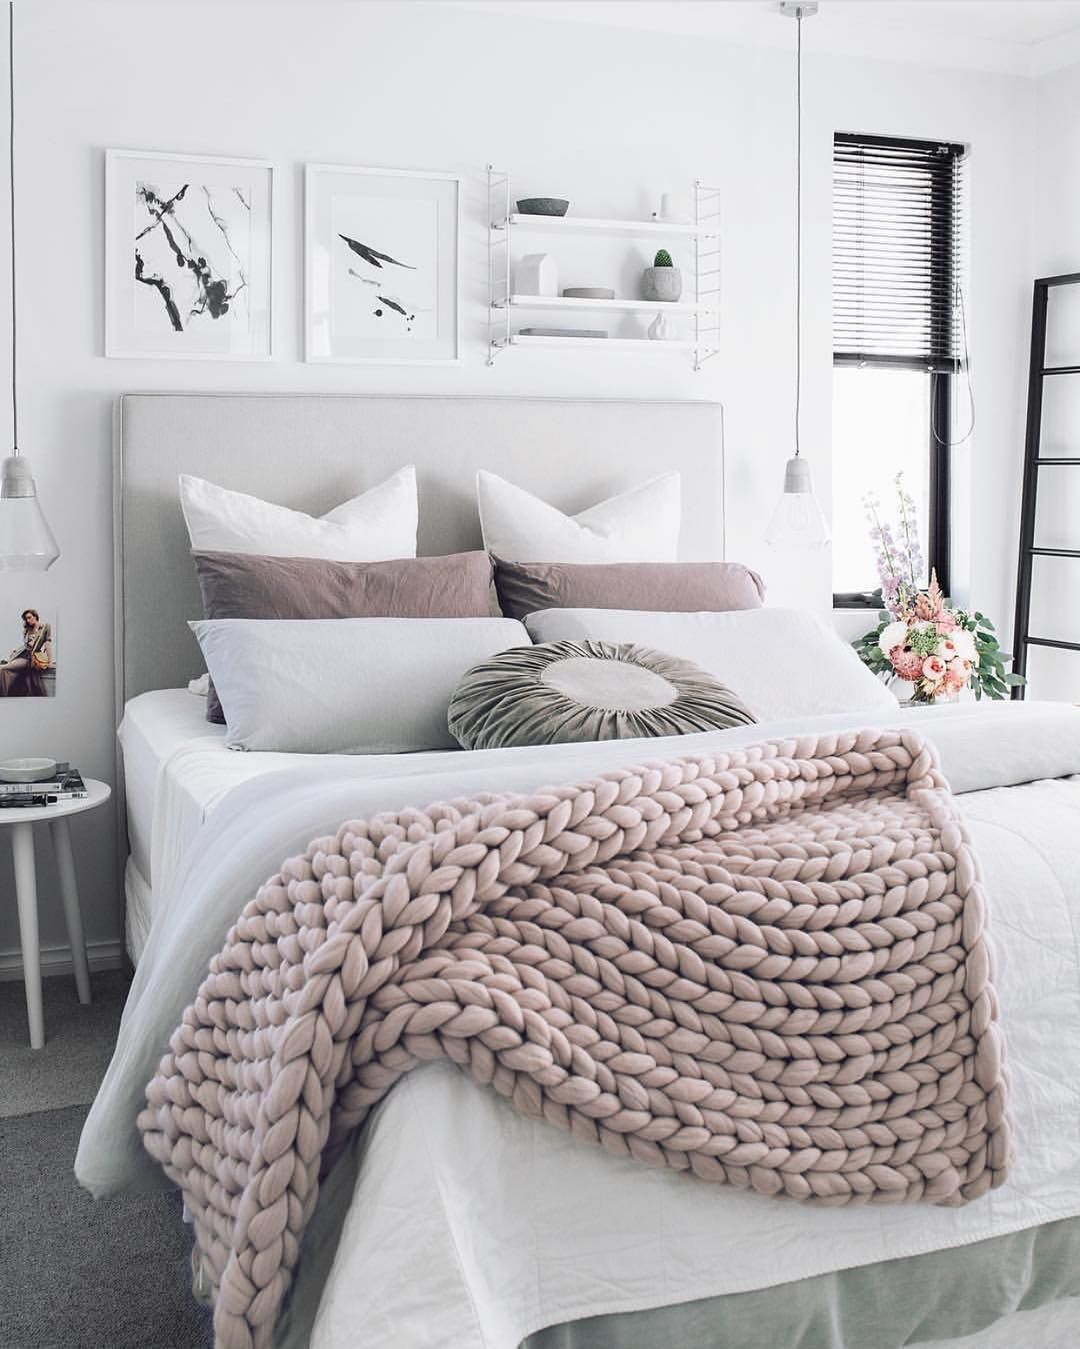 A chunky knit wool throw adds texture